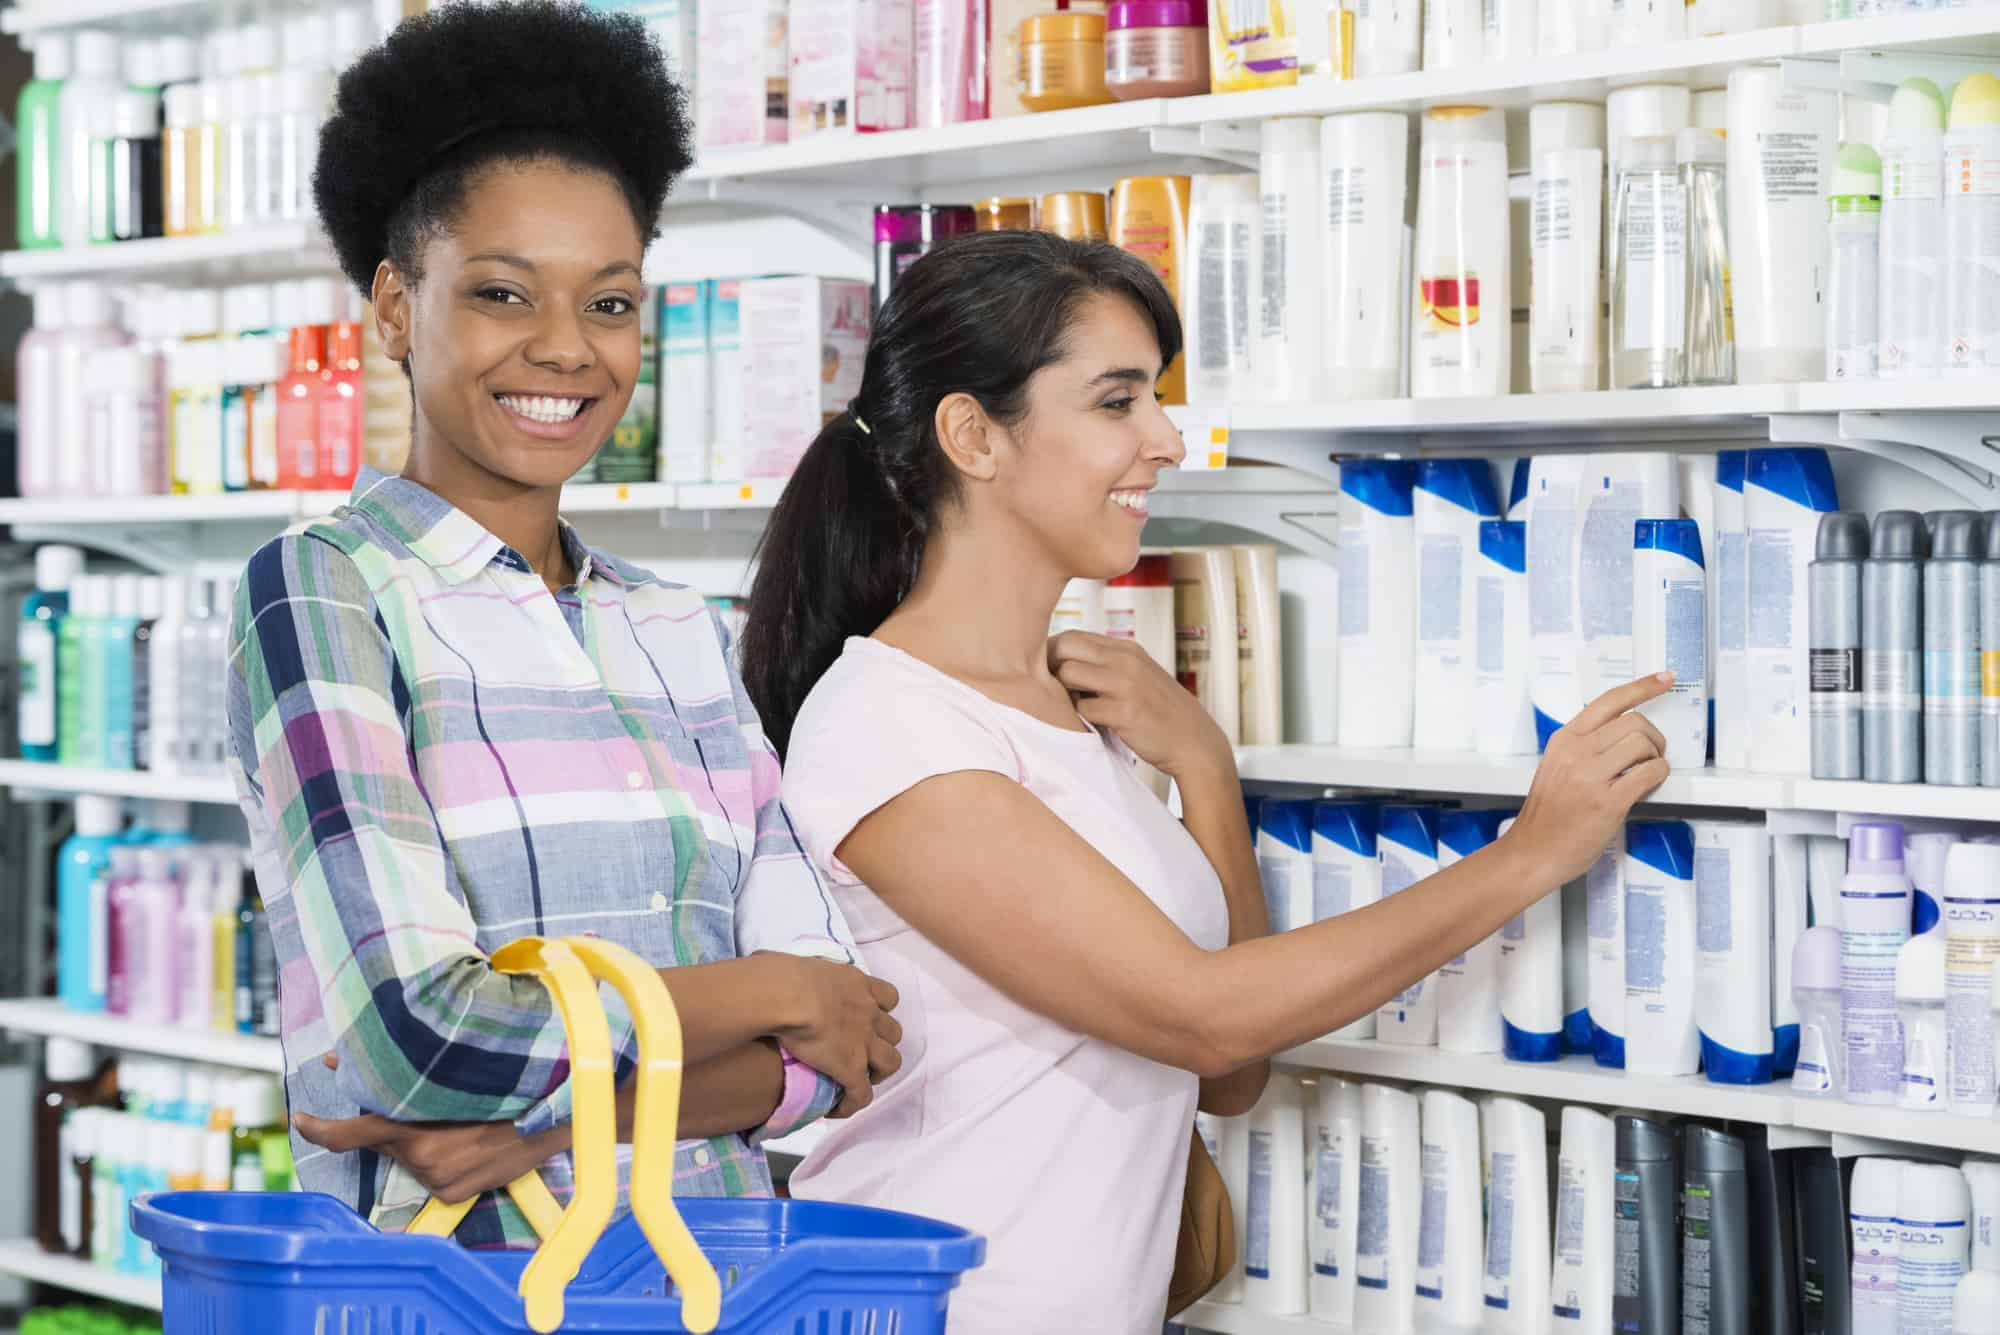 Portrait of confident woman smiling while friend choosing product